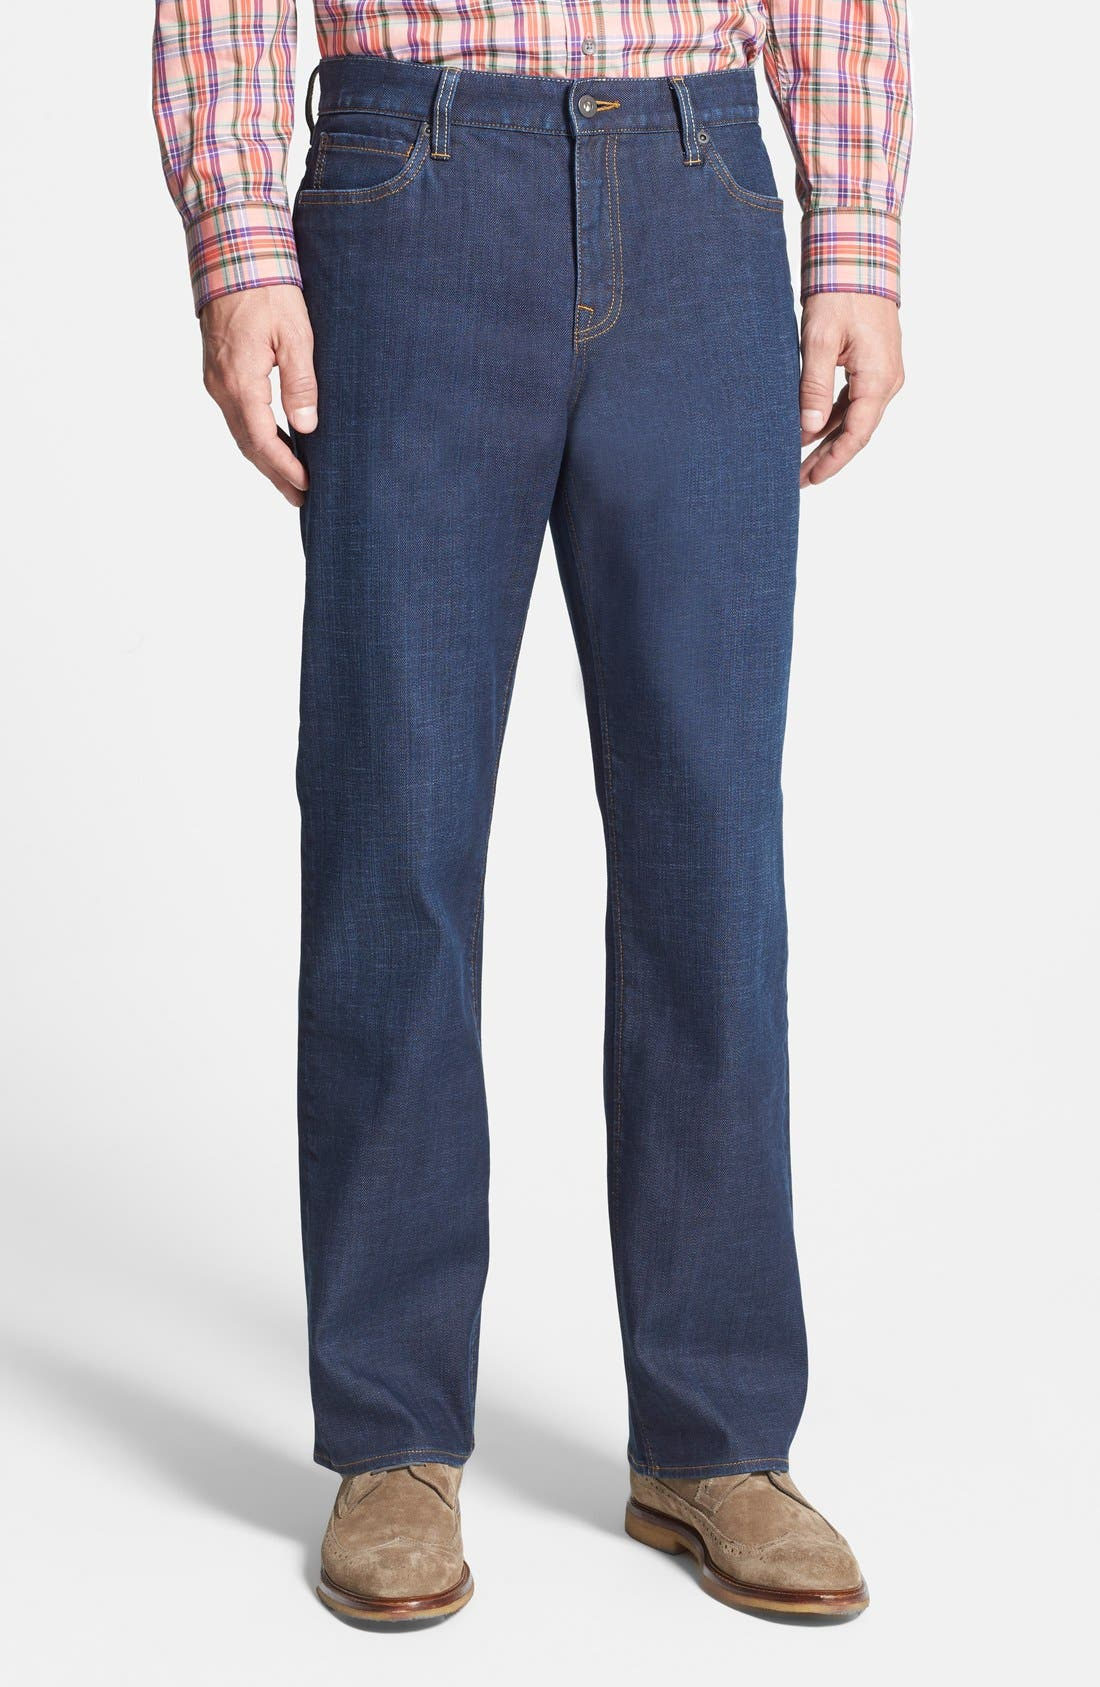 Main Image - Cutter & Buck Greenwood Relaxed Fit Jeans